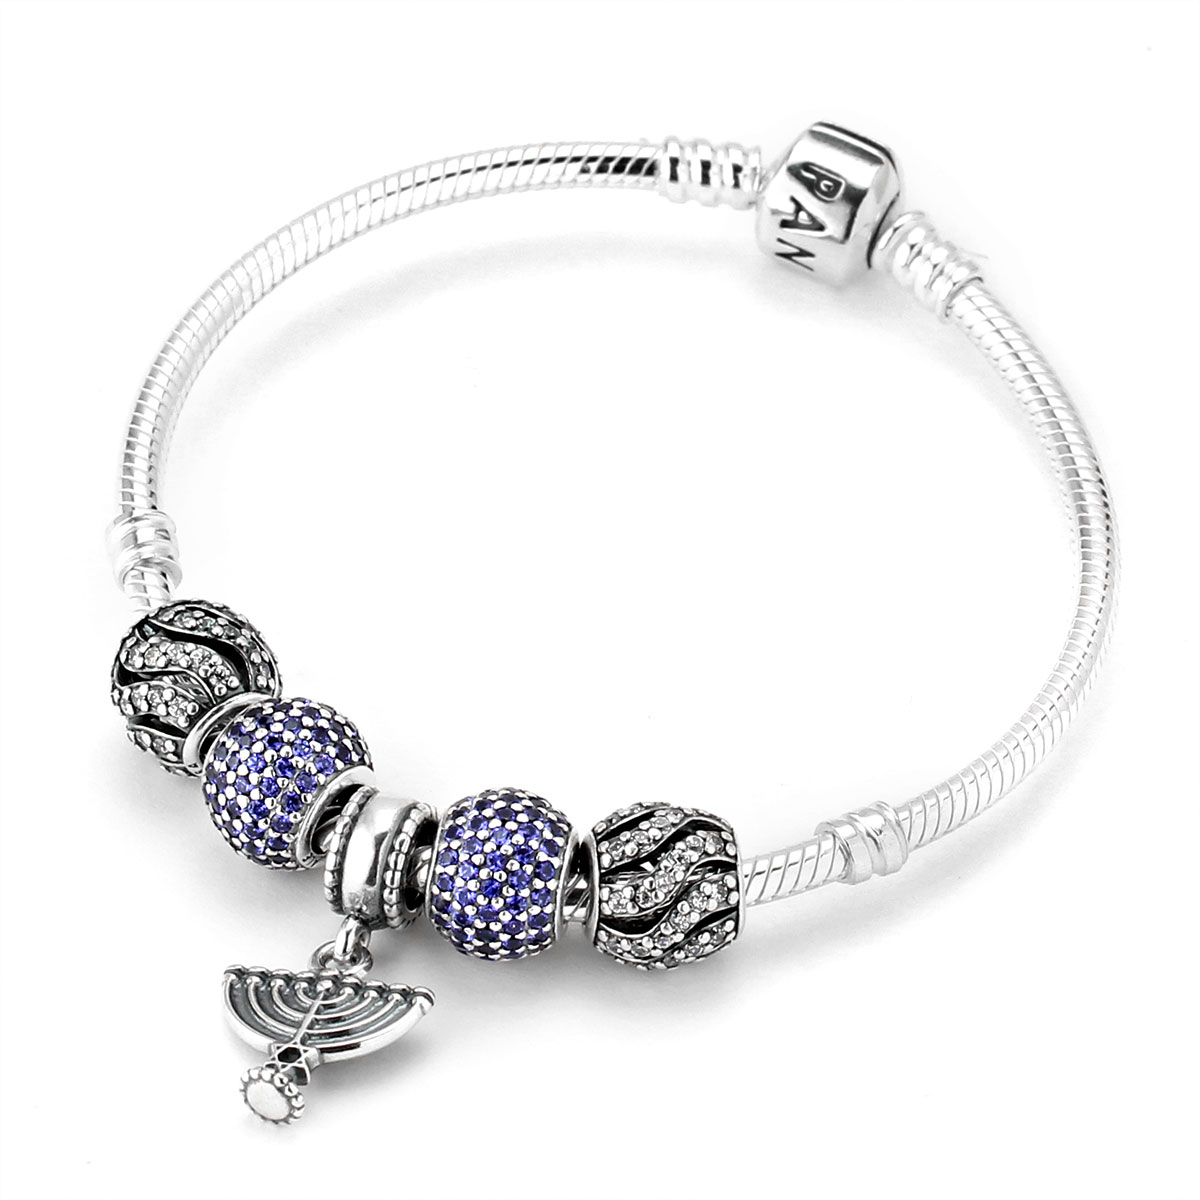 From elegant to contemporary, our bracelet styles include bangles, classic snake chains, leather, and more. Explore PANDORA bracelets and find a unique one that matches your style and personality.